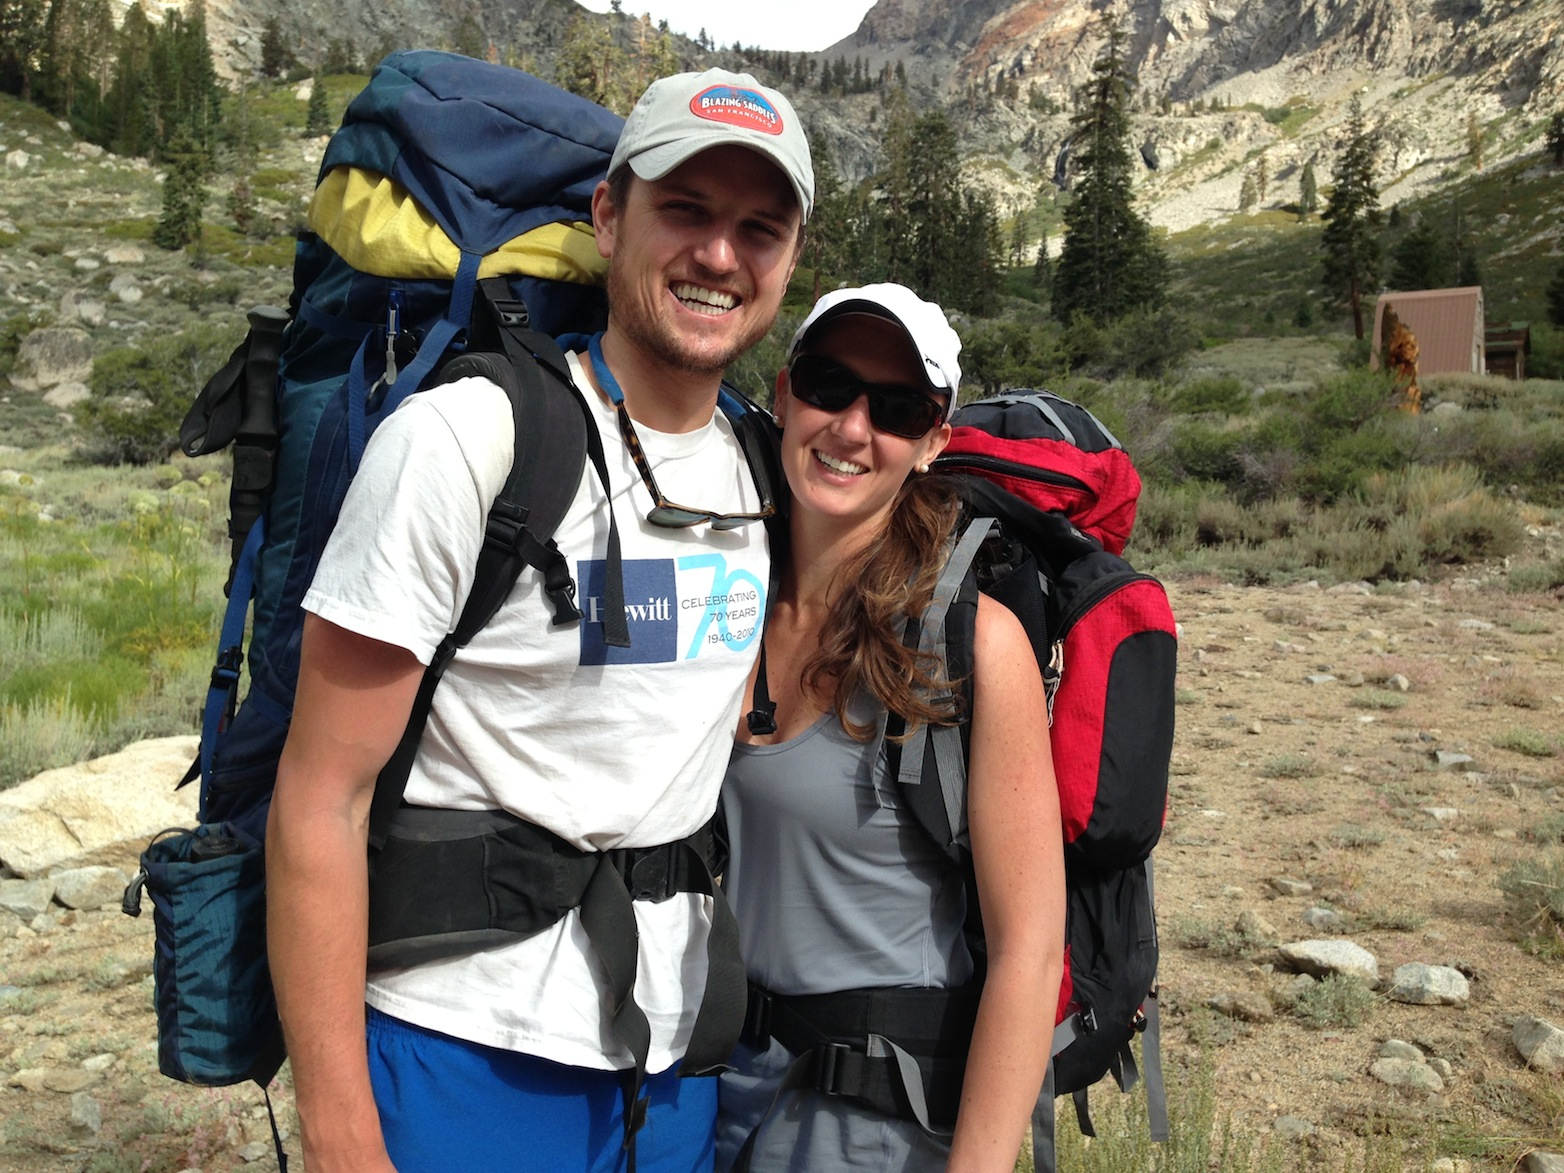 Zach and Cassie on their way up to Kearsarge Pass